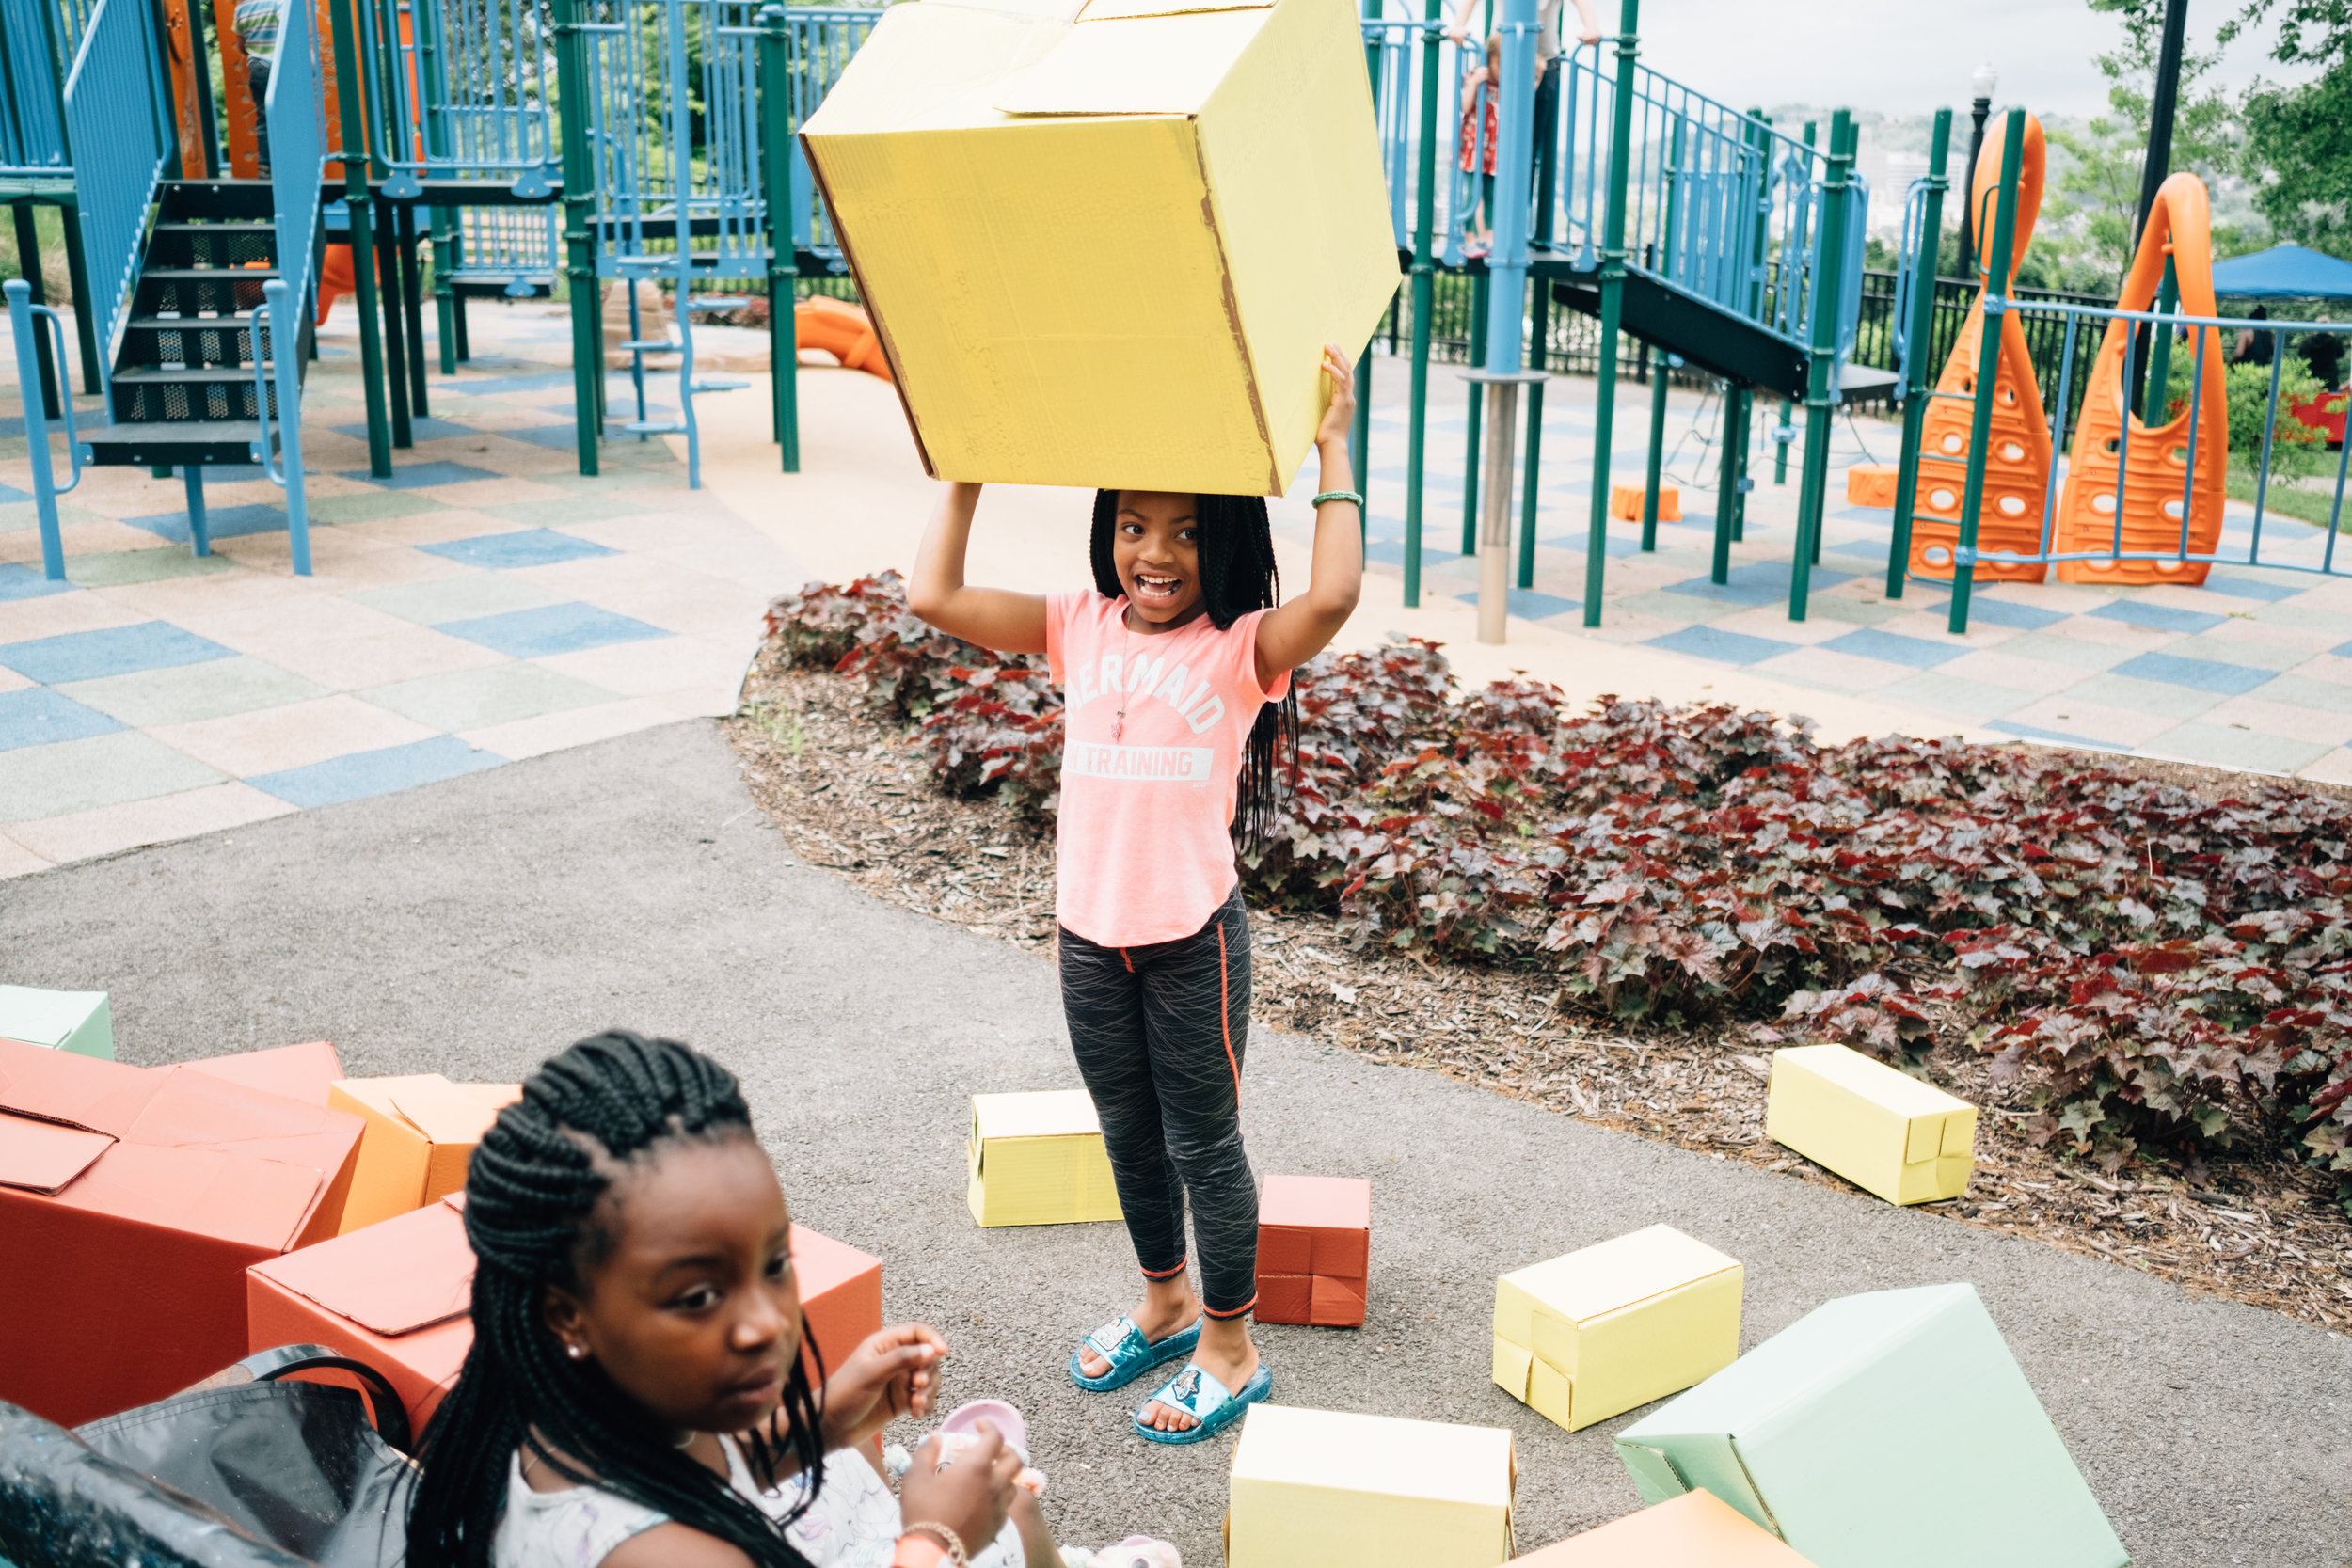 Giant blocks with the Children's Museum of Pittsburgh